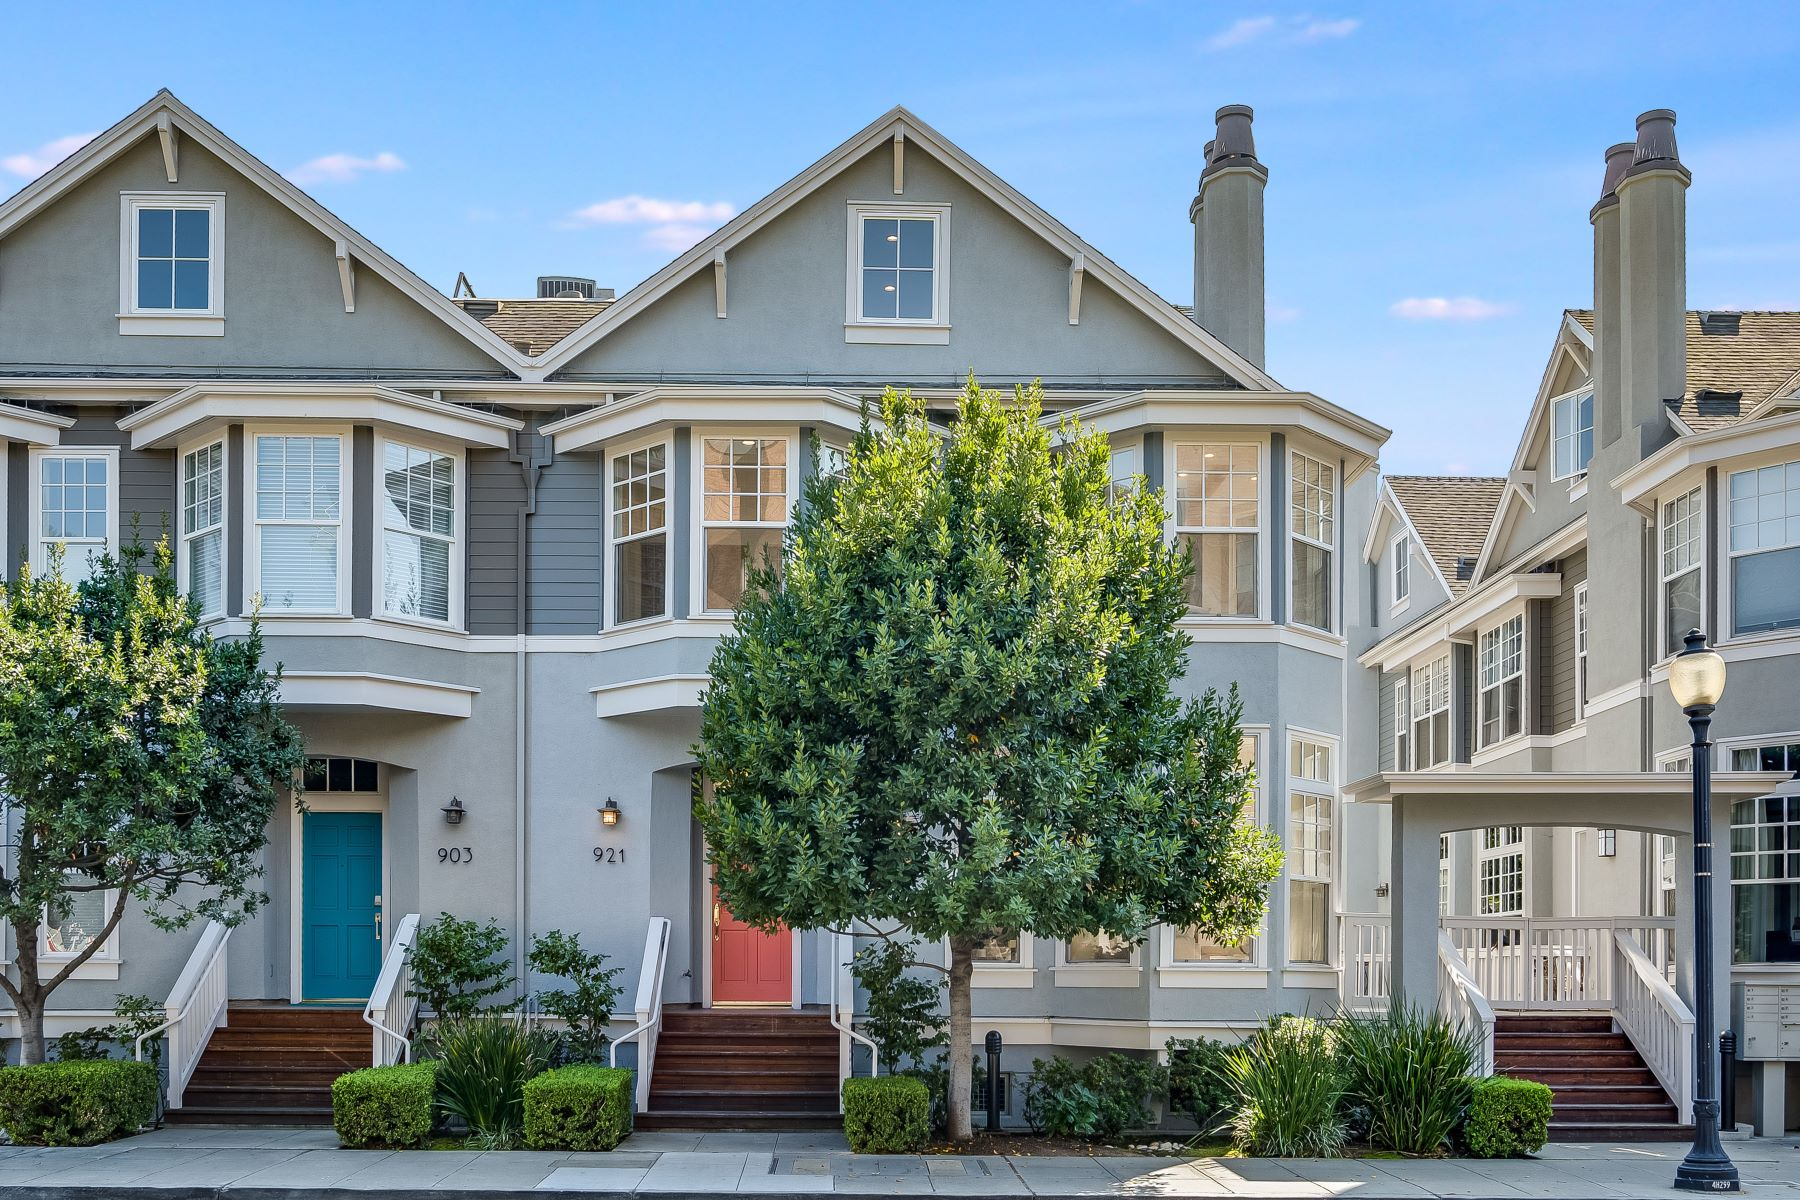 townhouses for Active at Rarely Available Contemporary Townhome Walking Distance to Castro Street 921 W Dana Street Mountain View, California 94041 United States